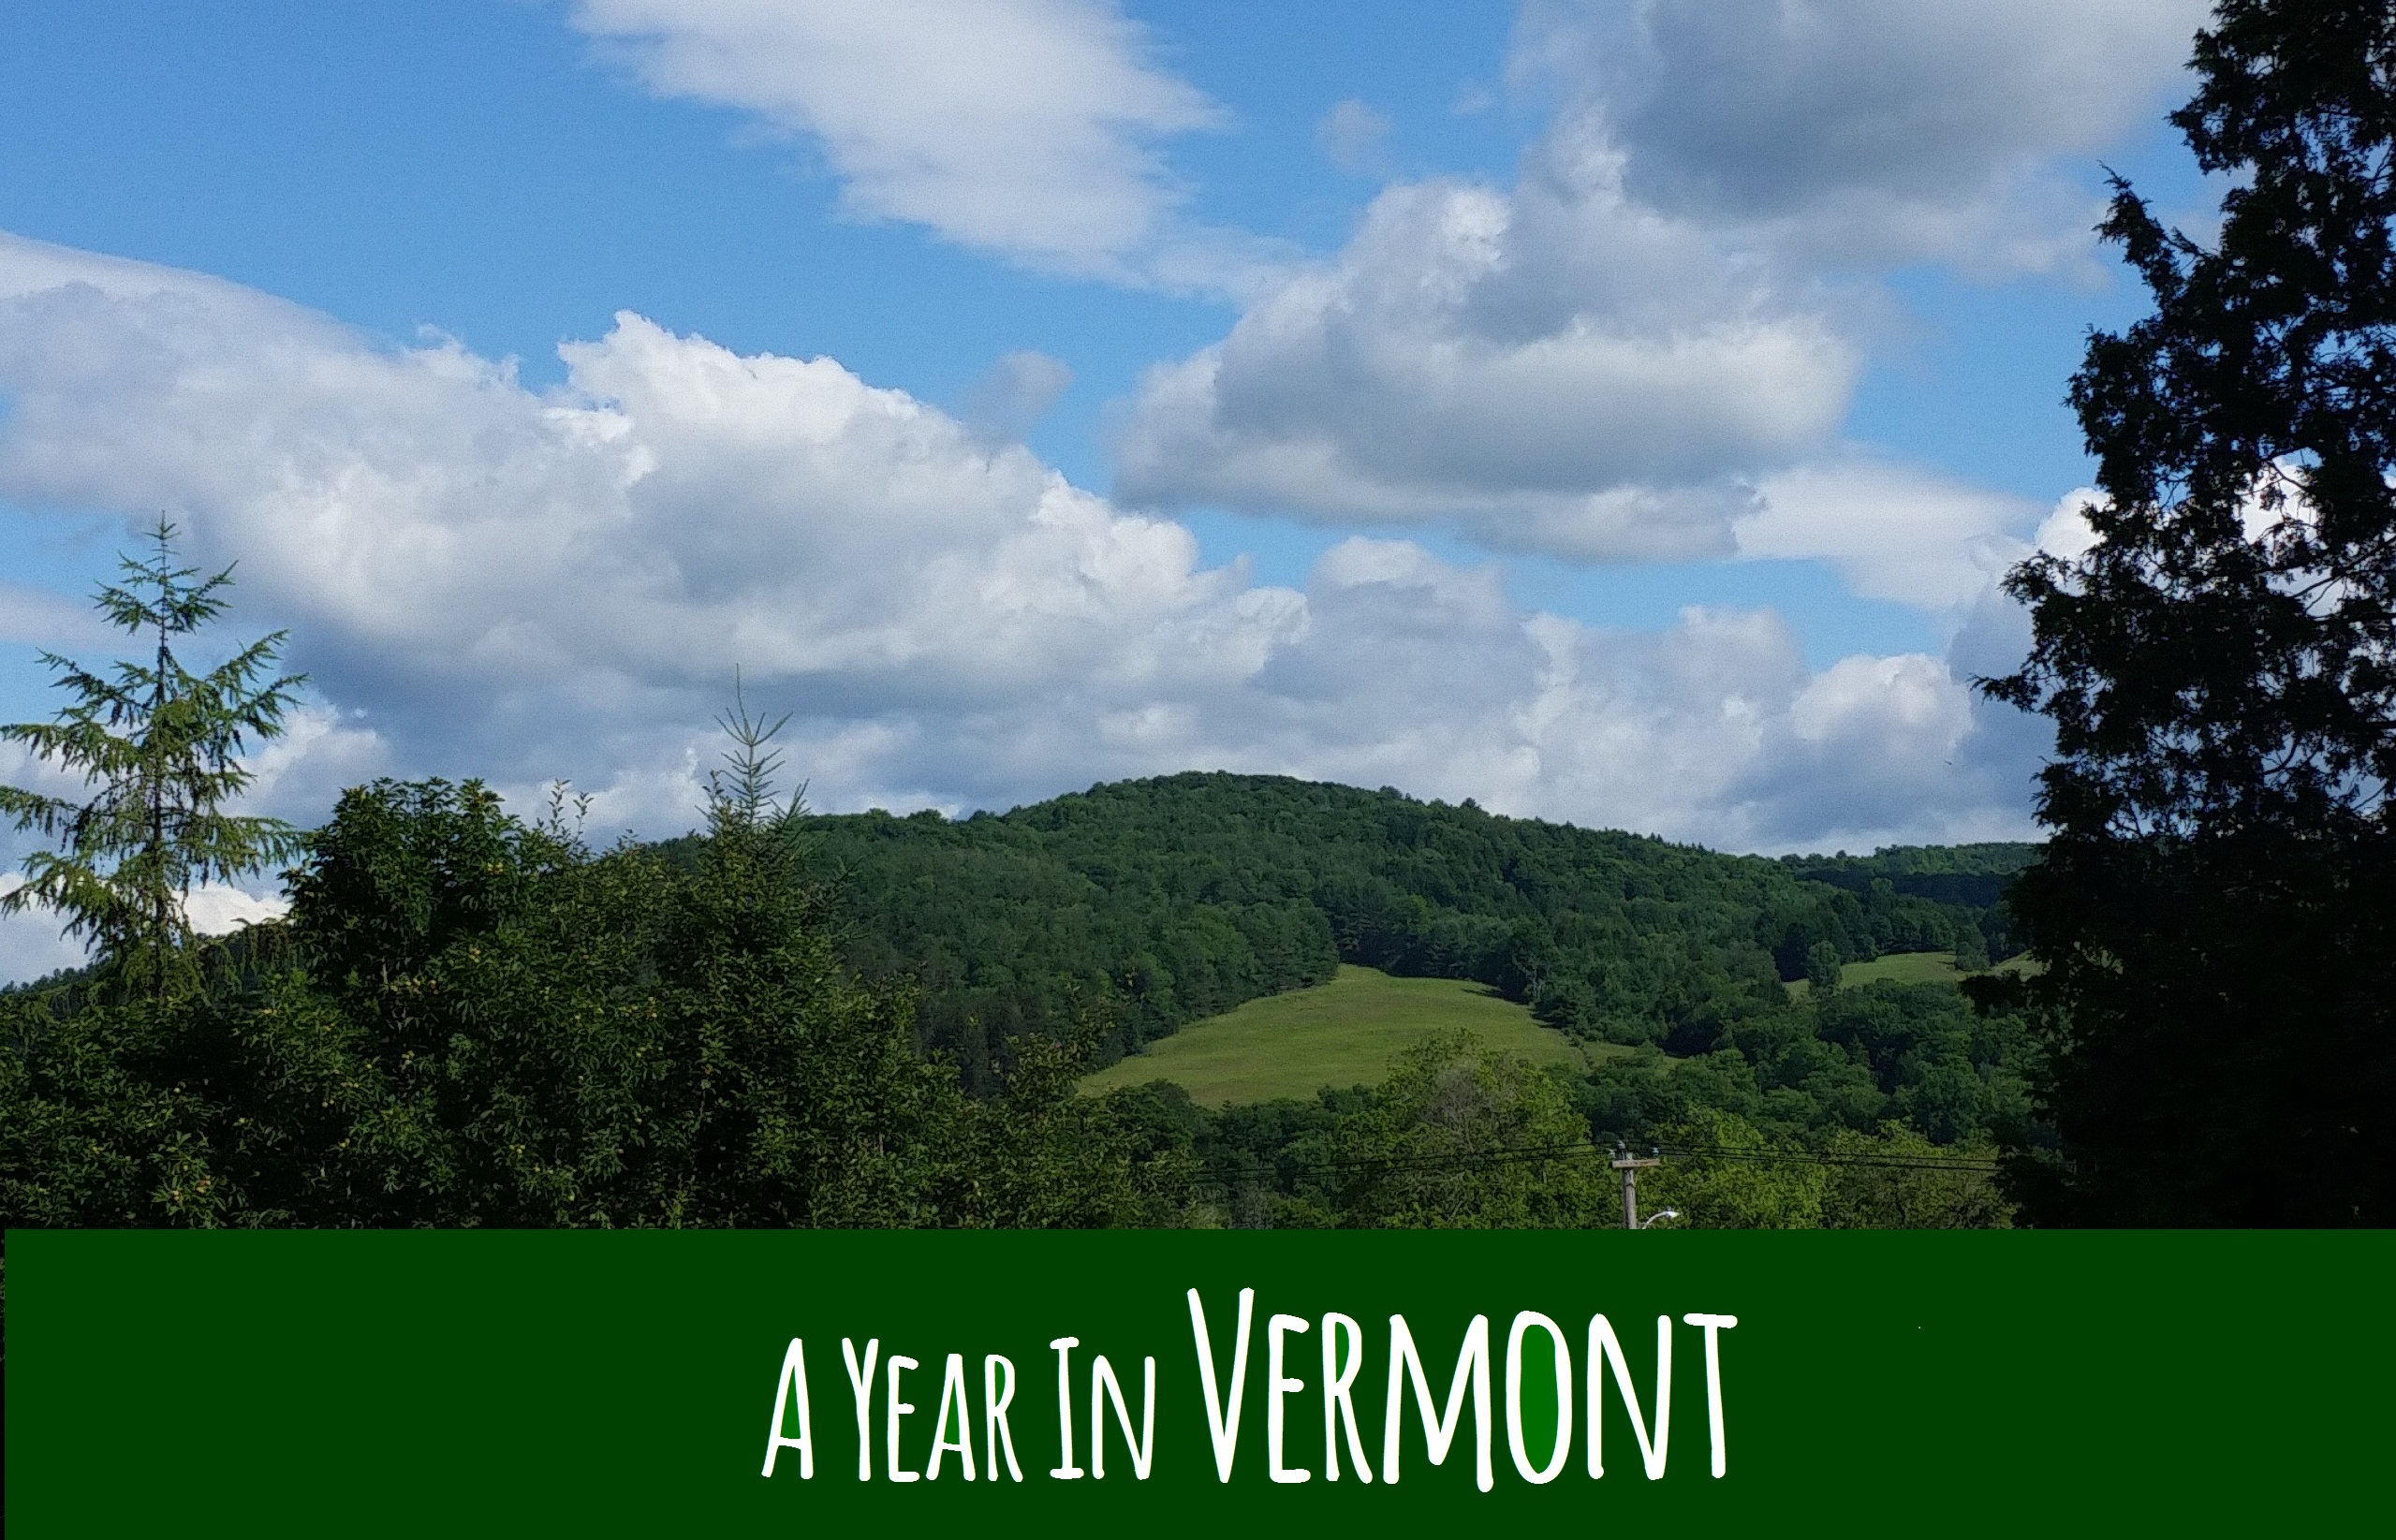 A Year in Vermont